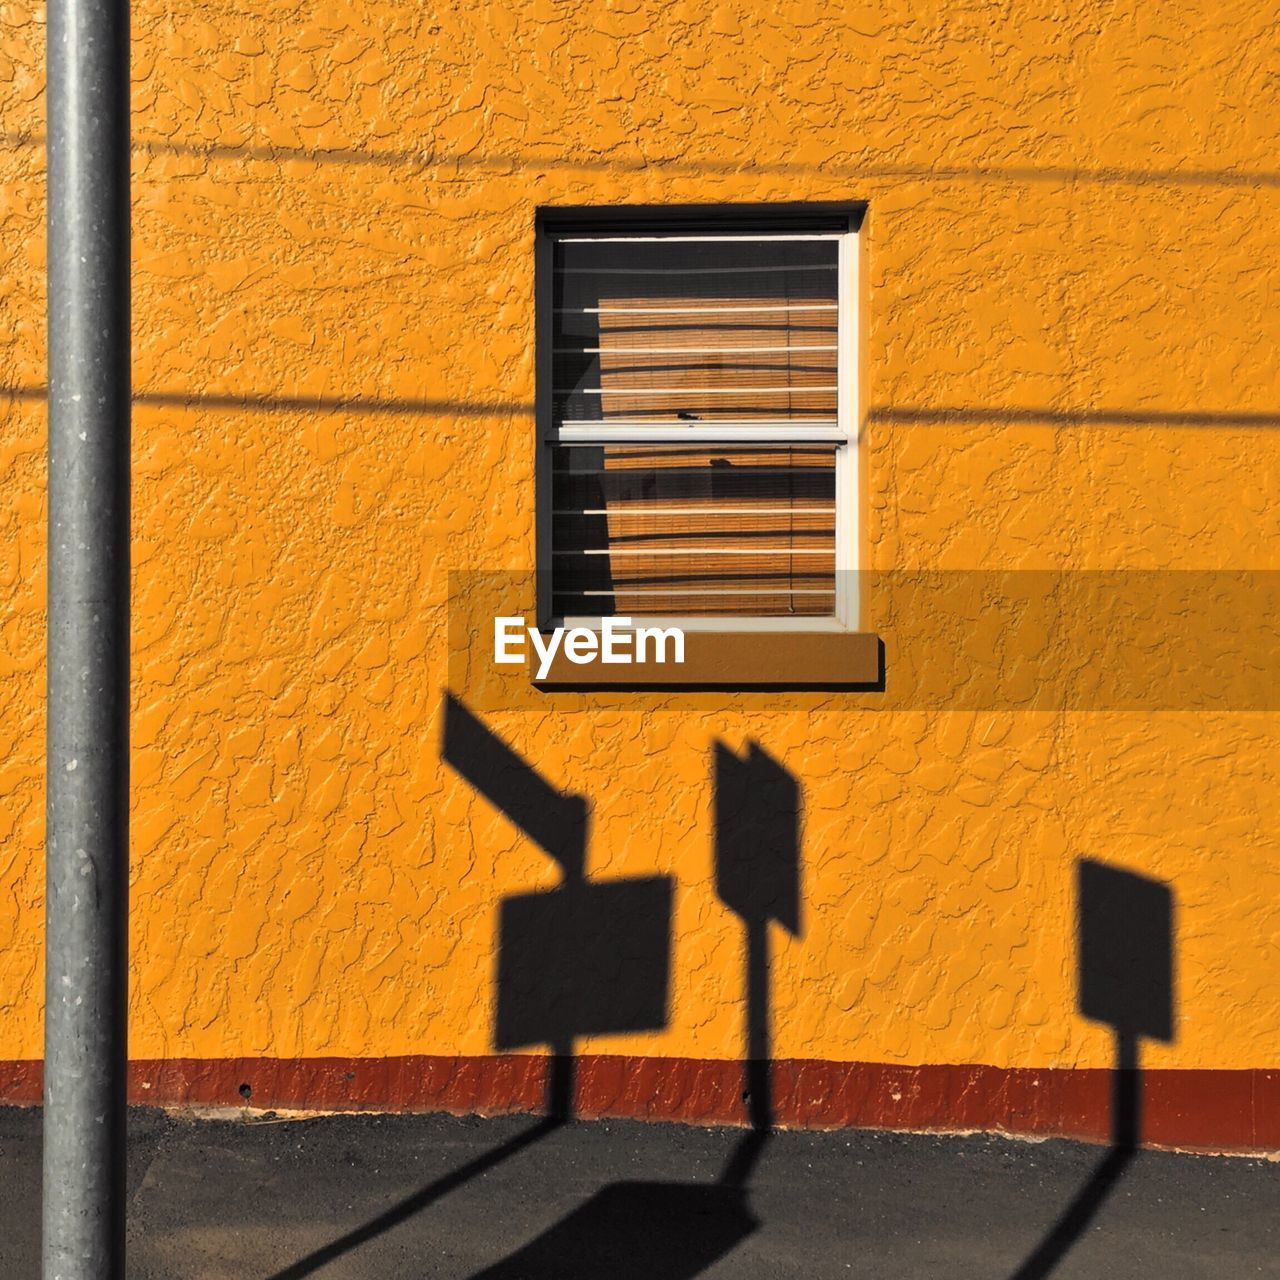 Shadow of signboards on orange wall of building